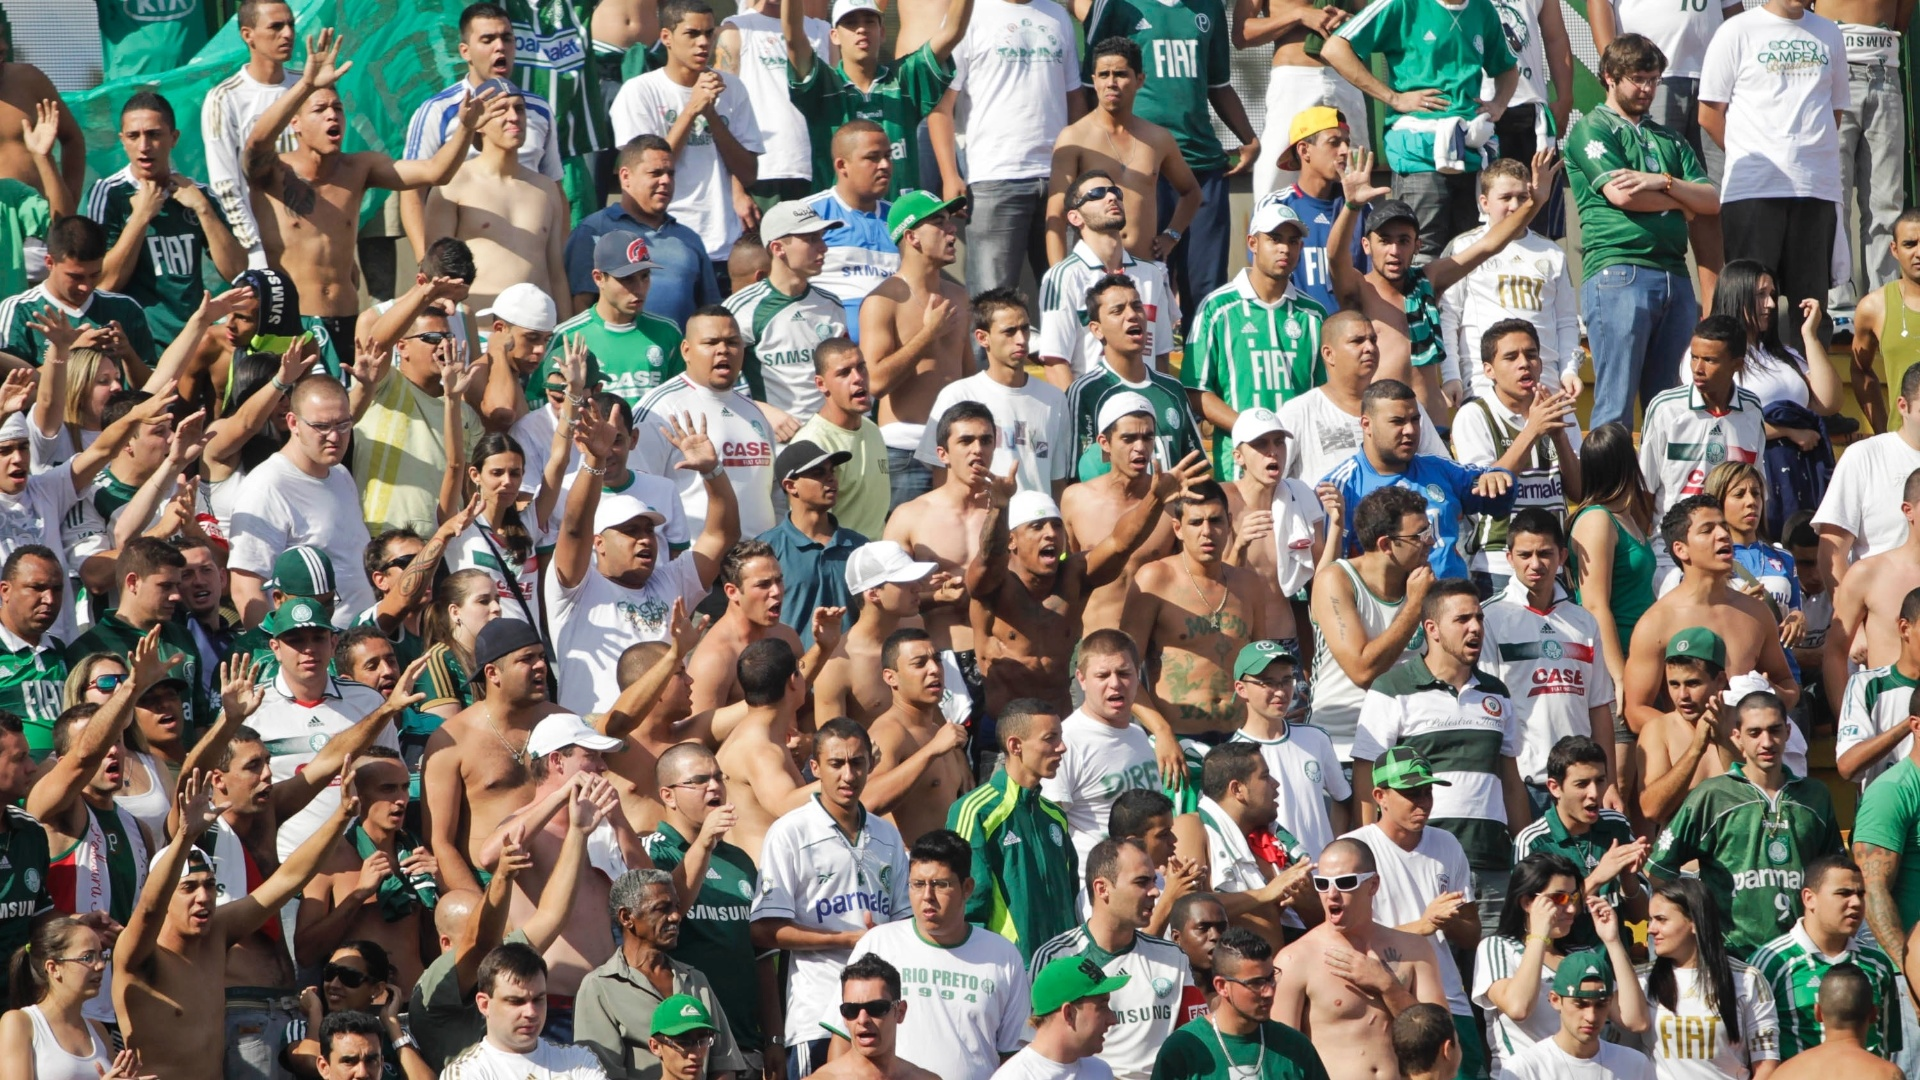 Torcida do Palmeiras marca presena em Volta Redonda para acompanhar o duelo contra o Flamengo